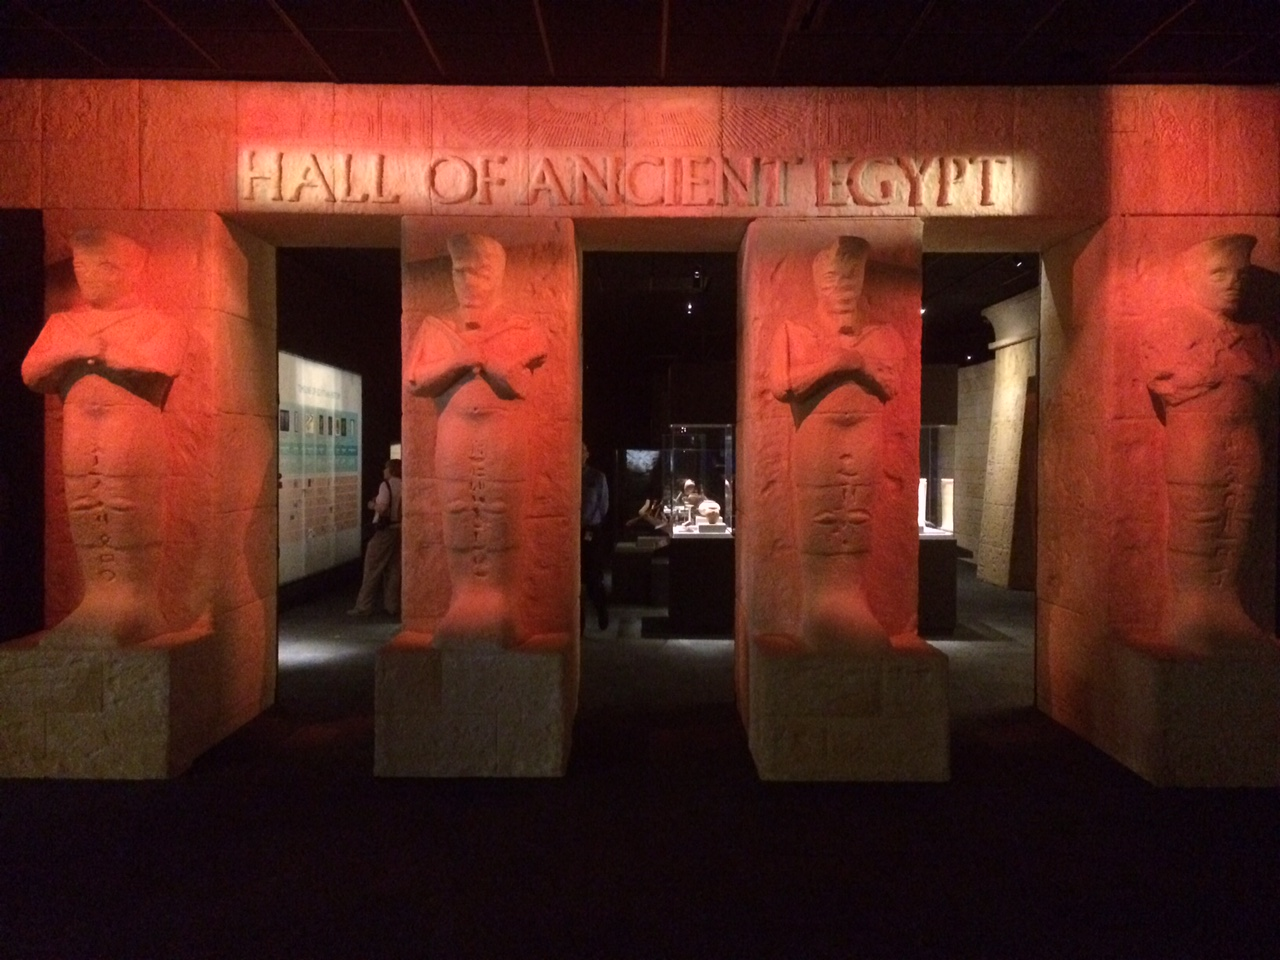 Entrance to the Hall of Ancient Egypt at HMNS